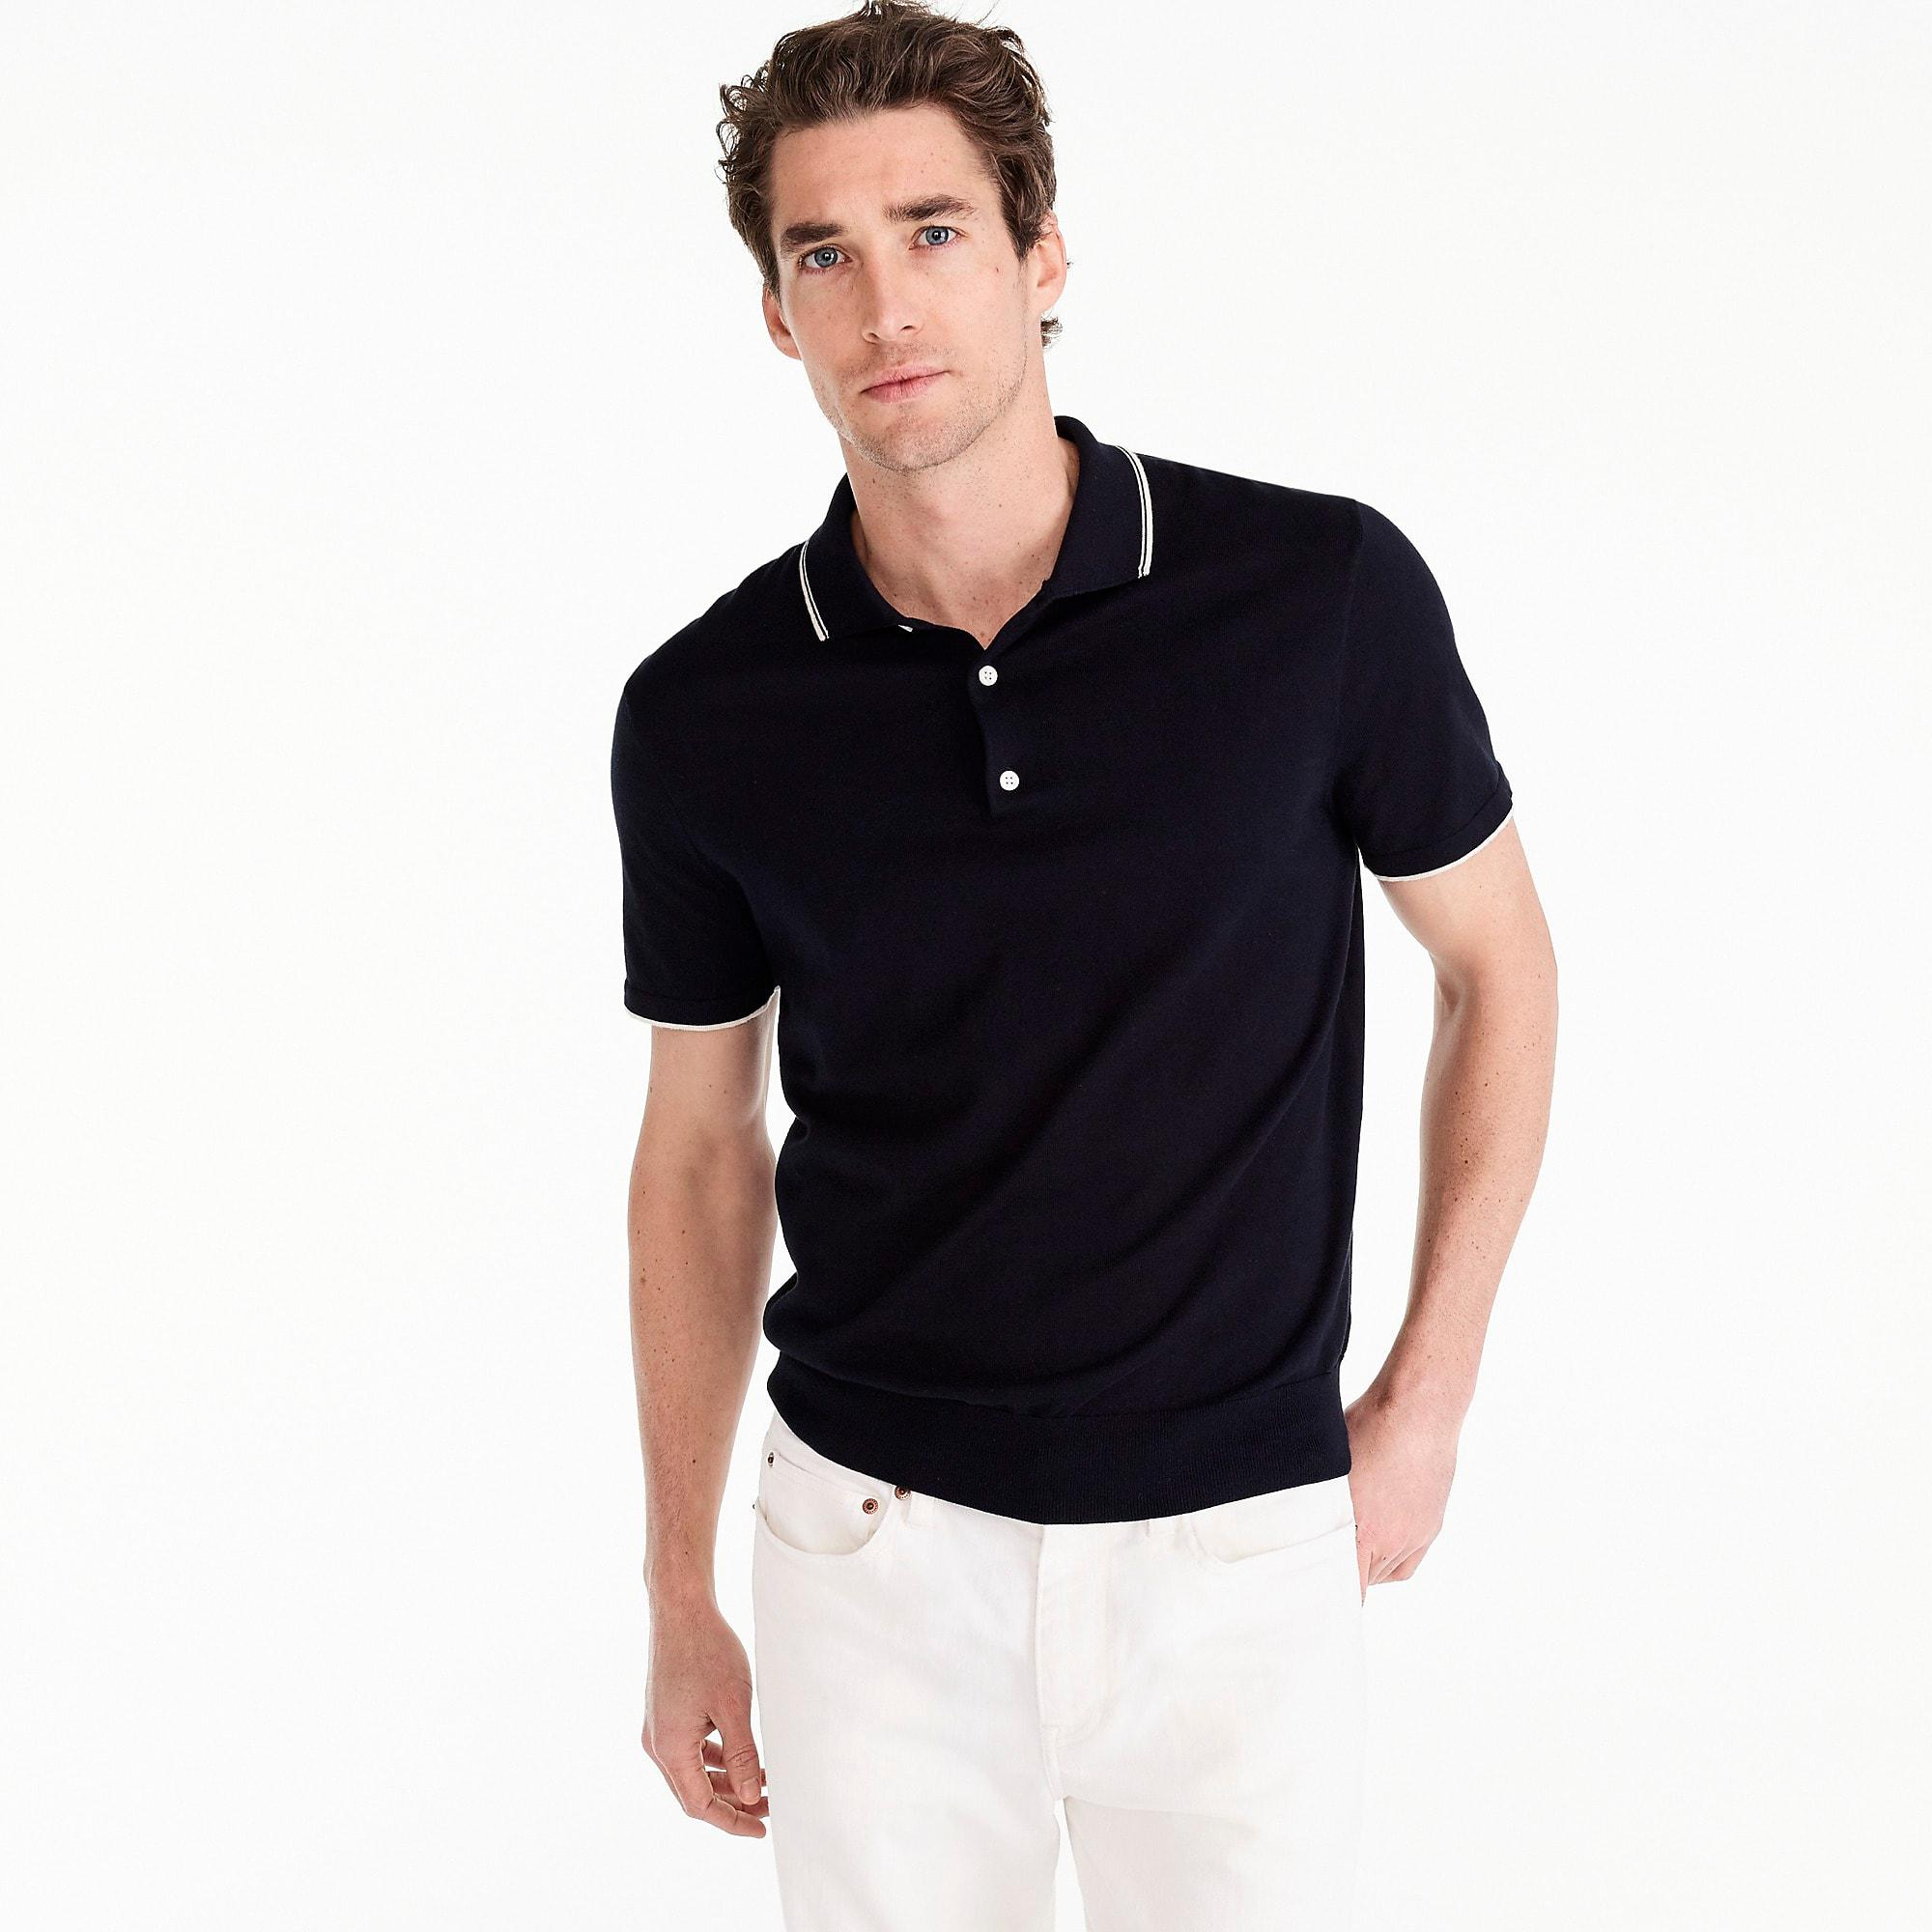 4c3a99cc J.Crew Pima Cotton Short-sleeve Tipped Sweater Polo in Blue for Men ...